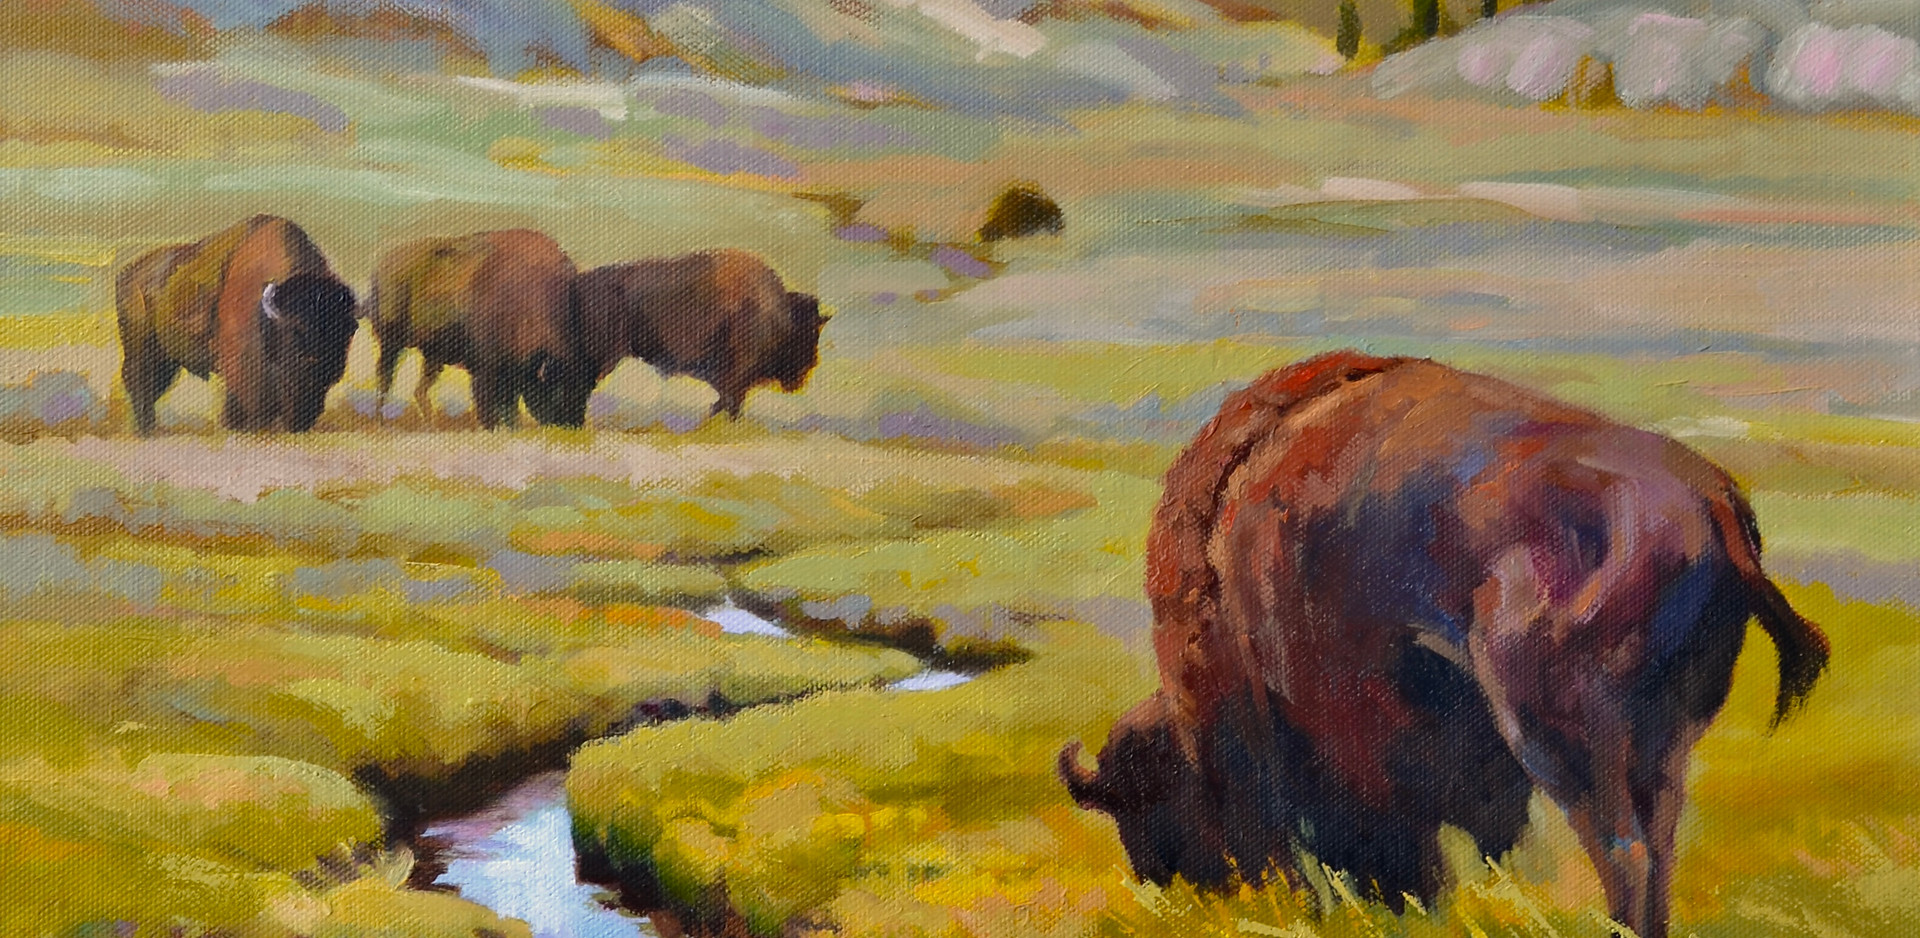 Summer's Pastures Oil 16X20 I'm SOLD but prints are available